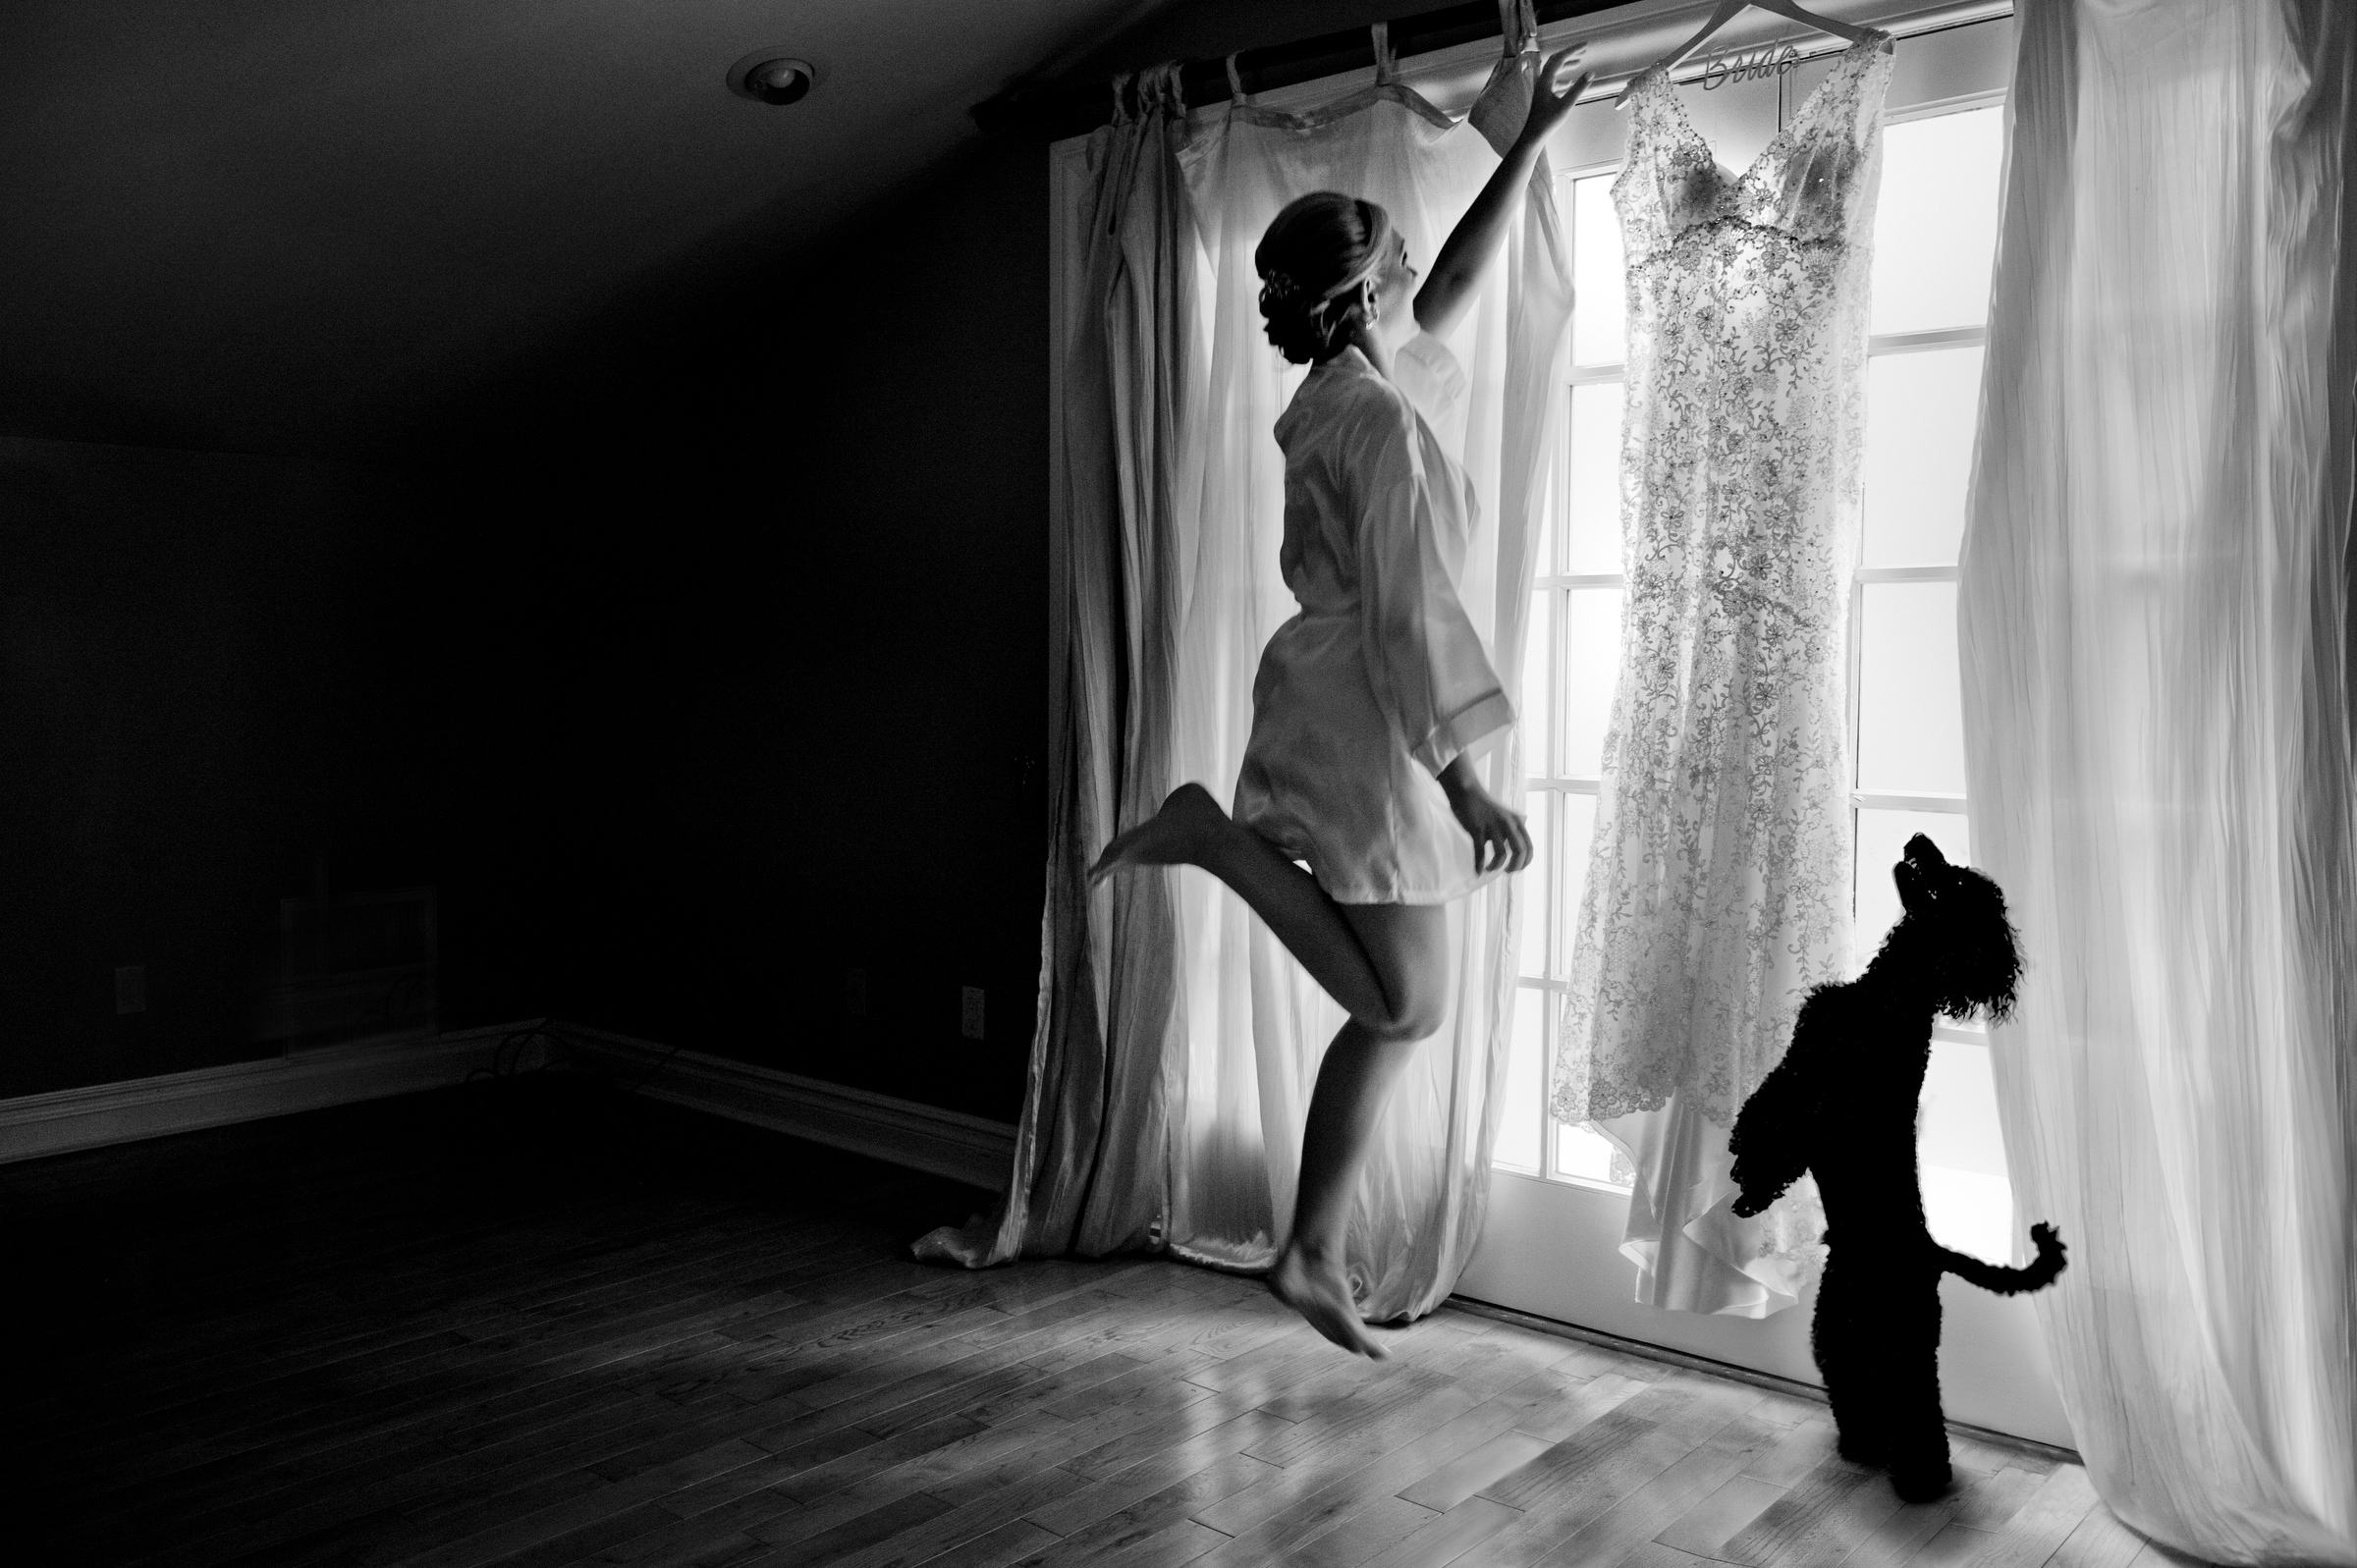 Bride and dog jumping up to reach hanging gown - photo by Matthew Sowa Photography